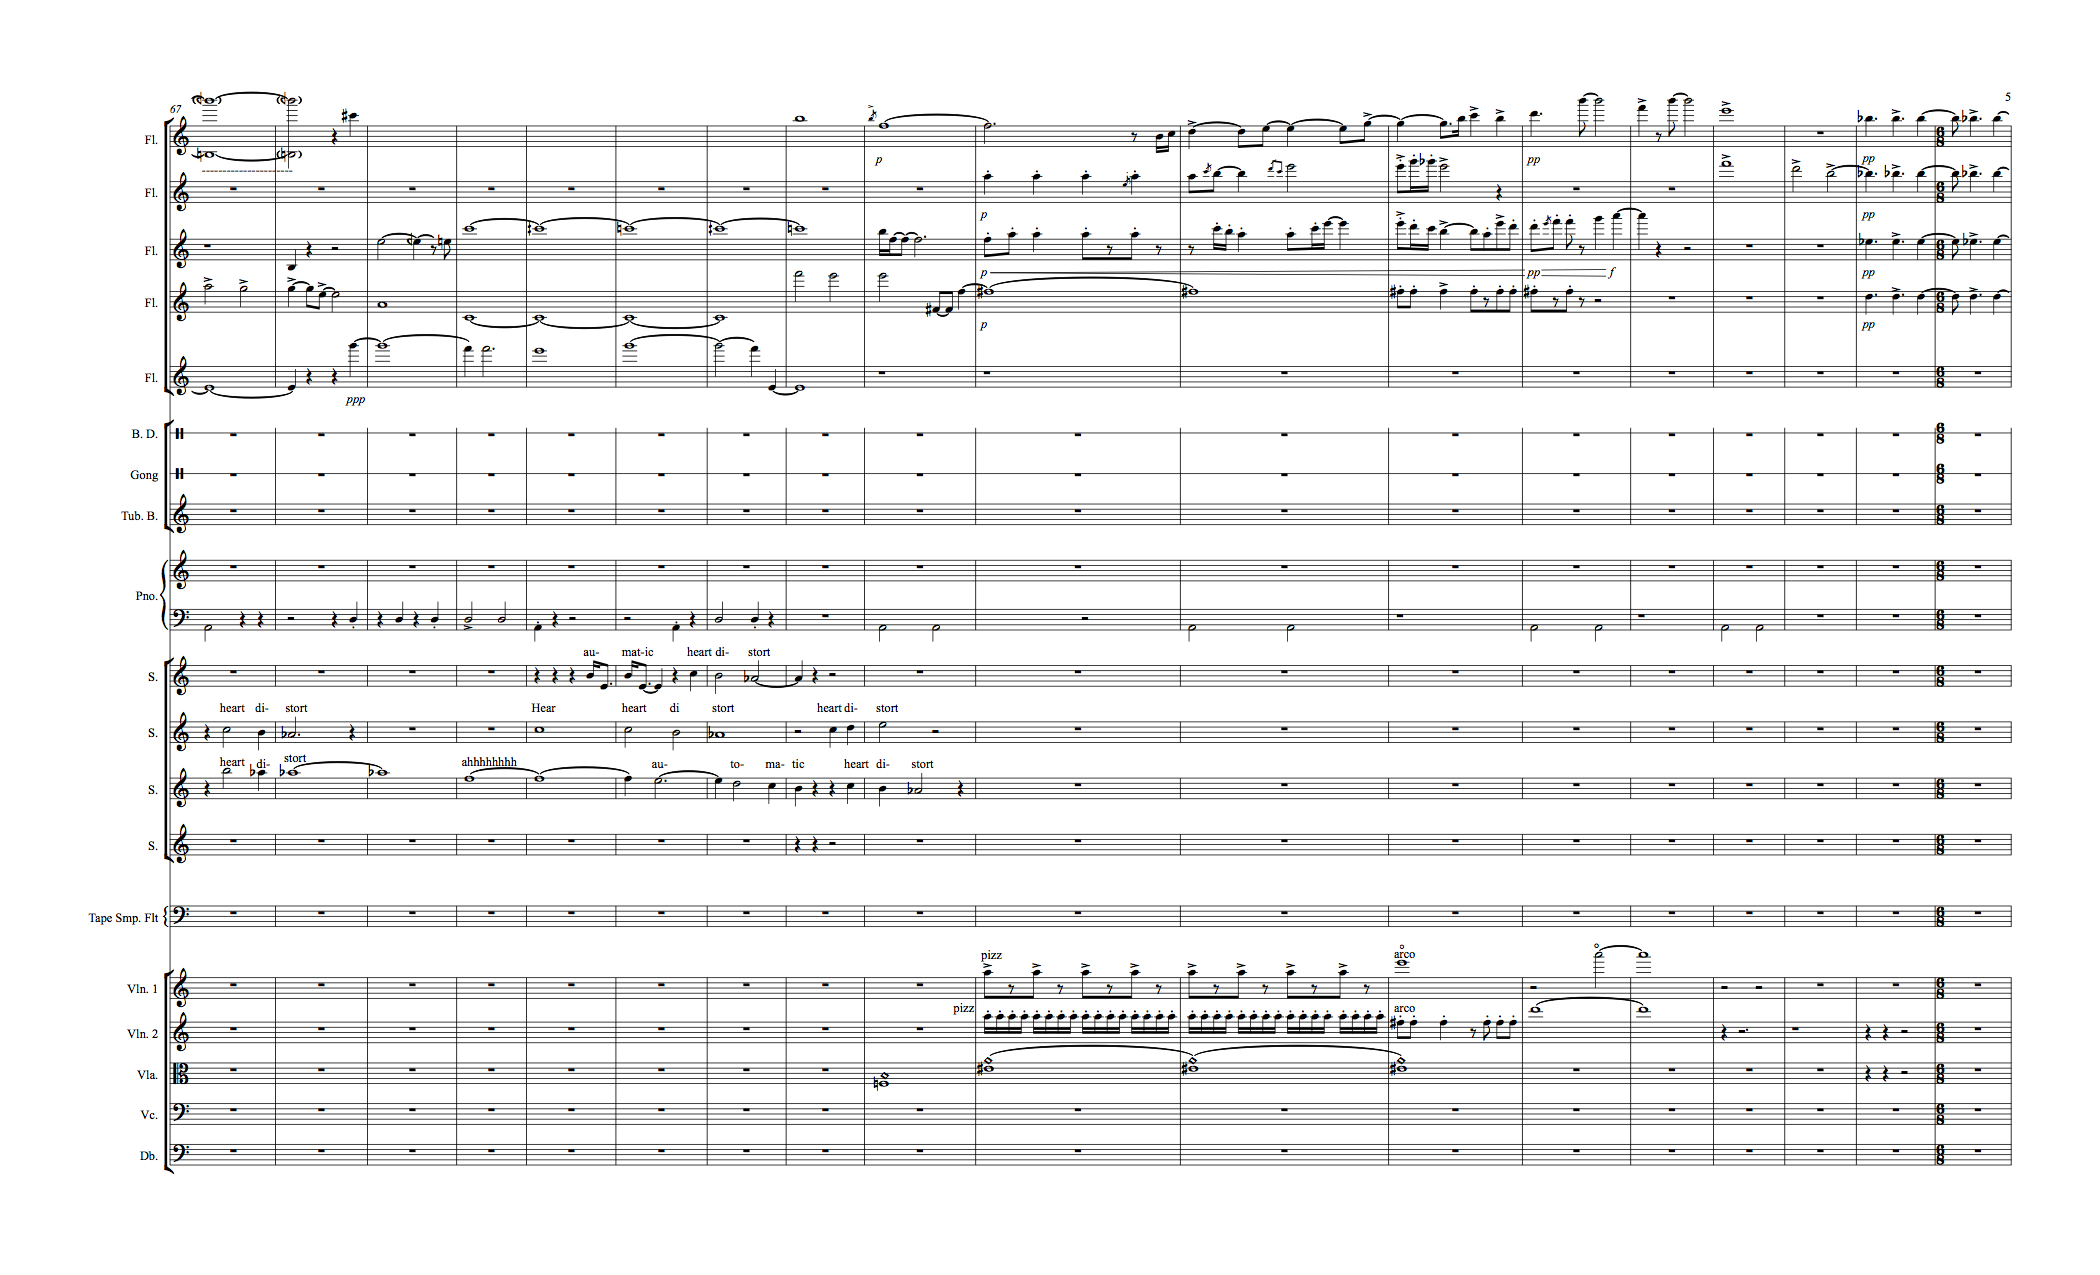 Automatic_heart_distort_final_3_25 - score and parts-5.jpg